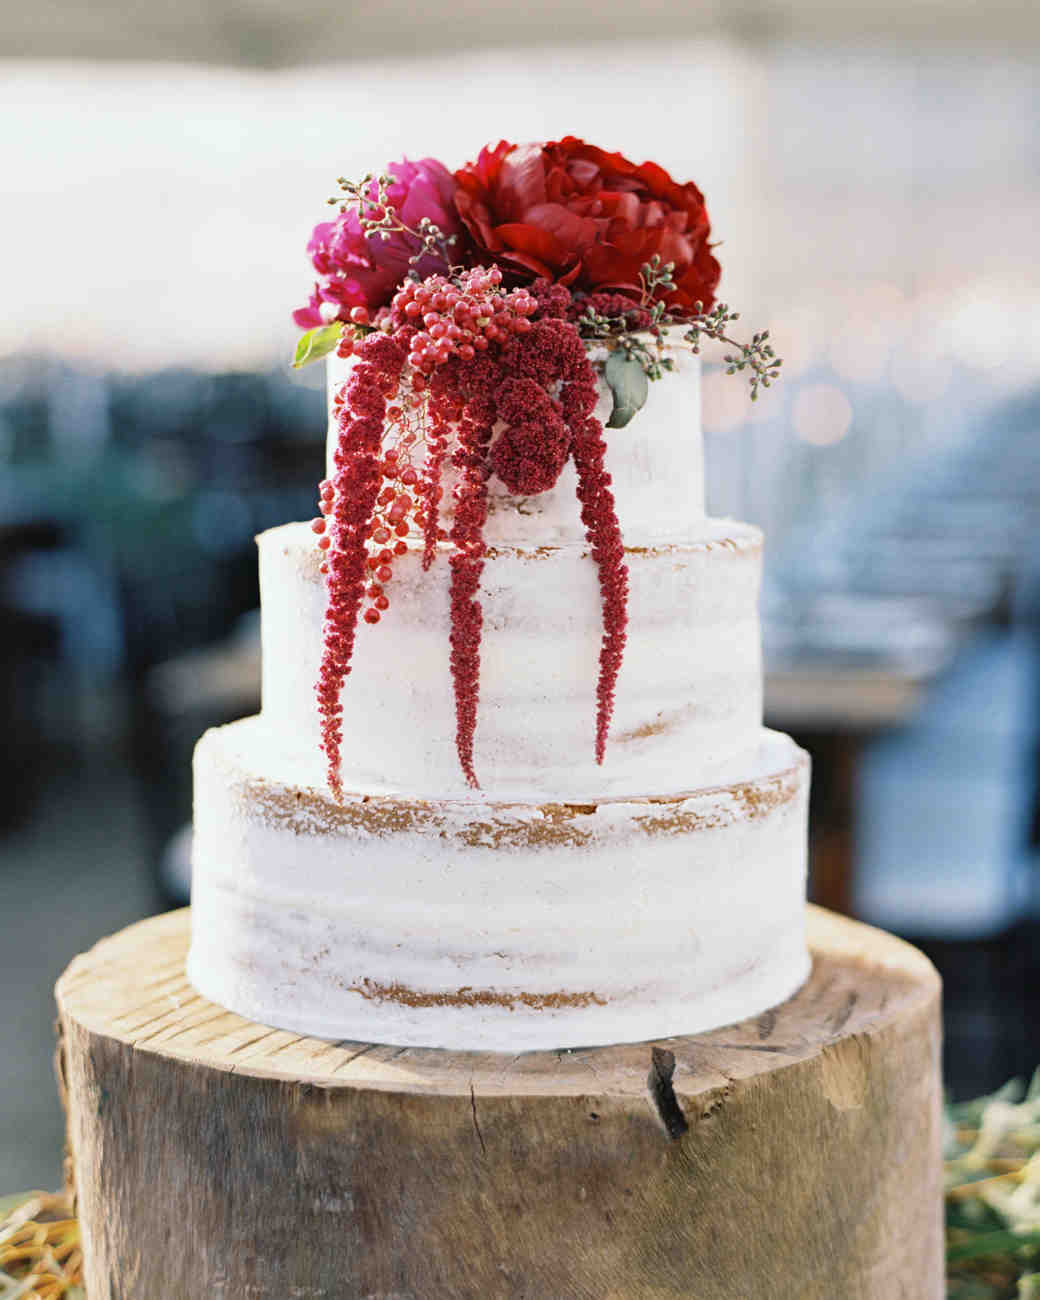 Flower Wedding Cupcake Ideas: 53 Fall Wedding Cakes We're Obsessed With